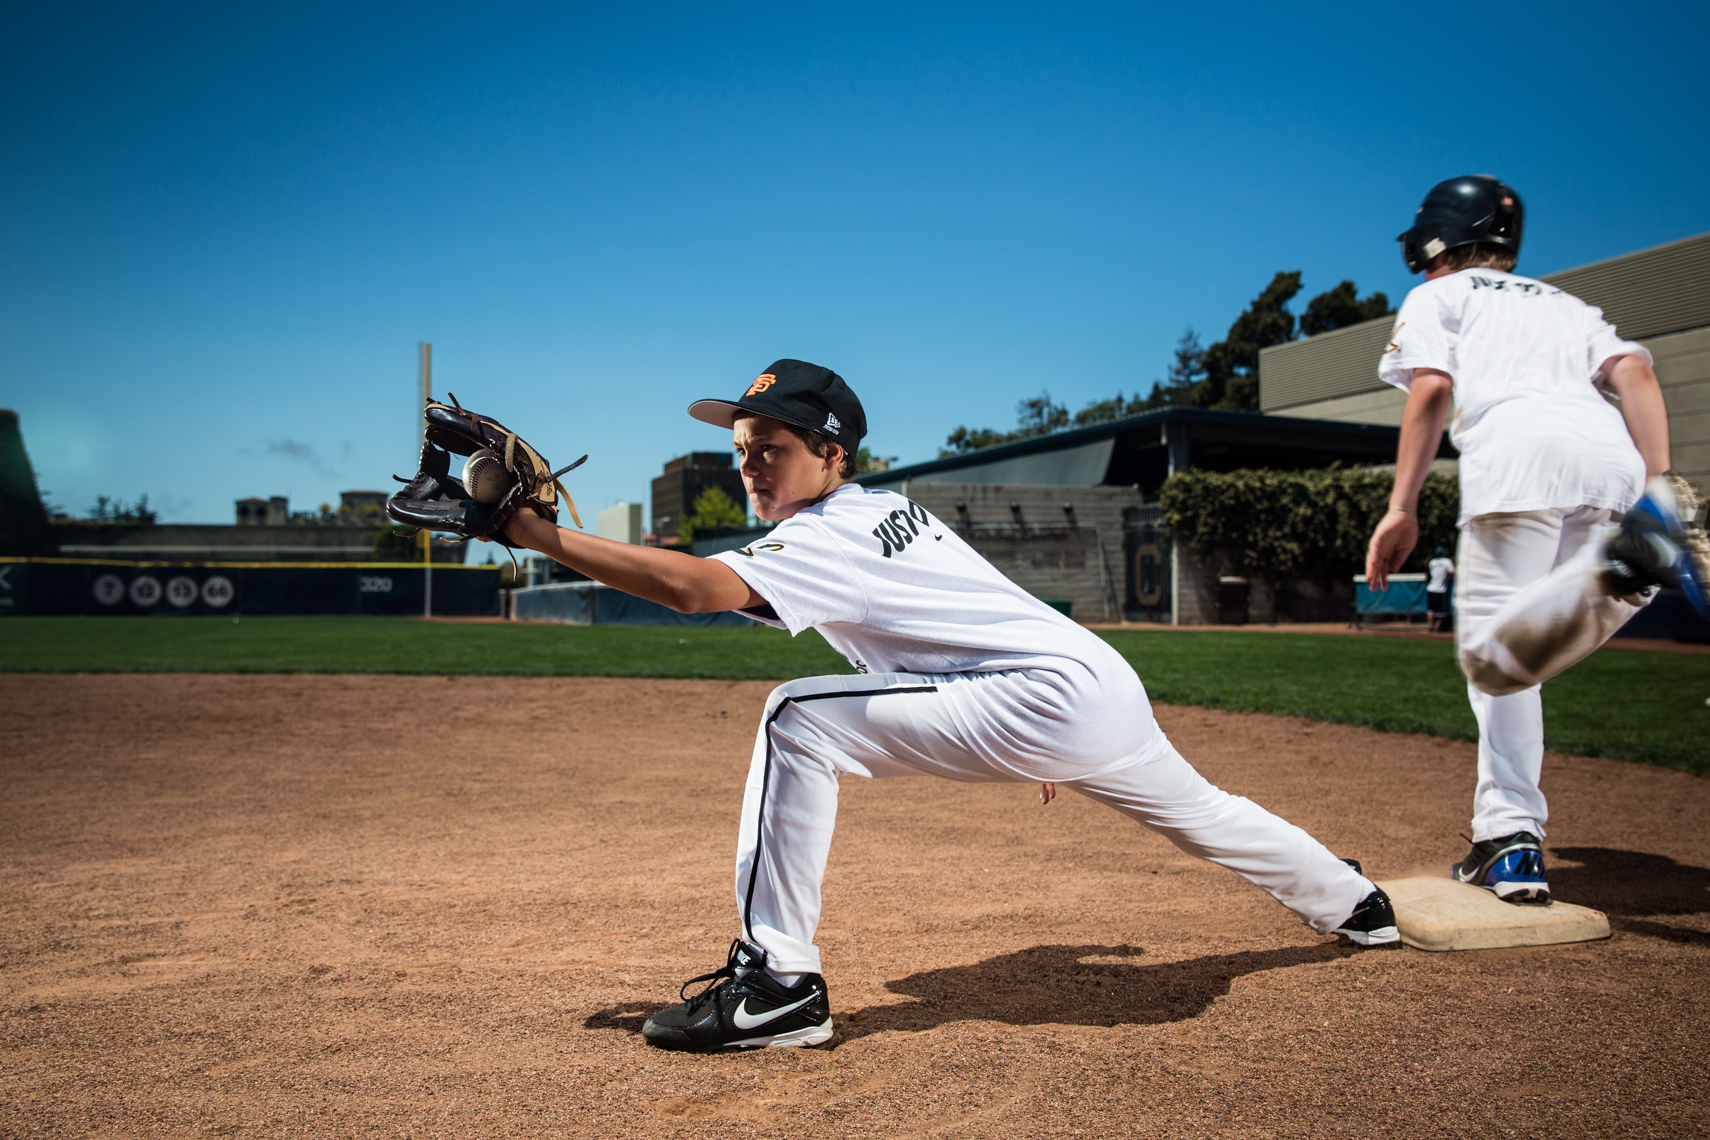 Nike-Baseball-San-Francisco-Sports-Photographer-6842